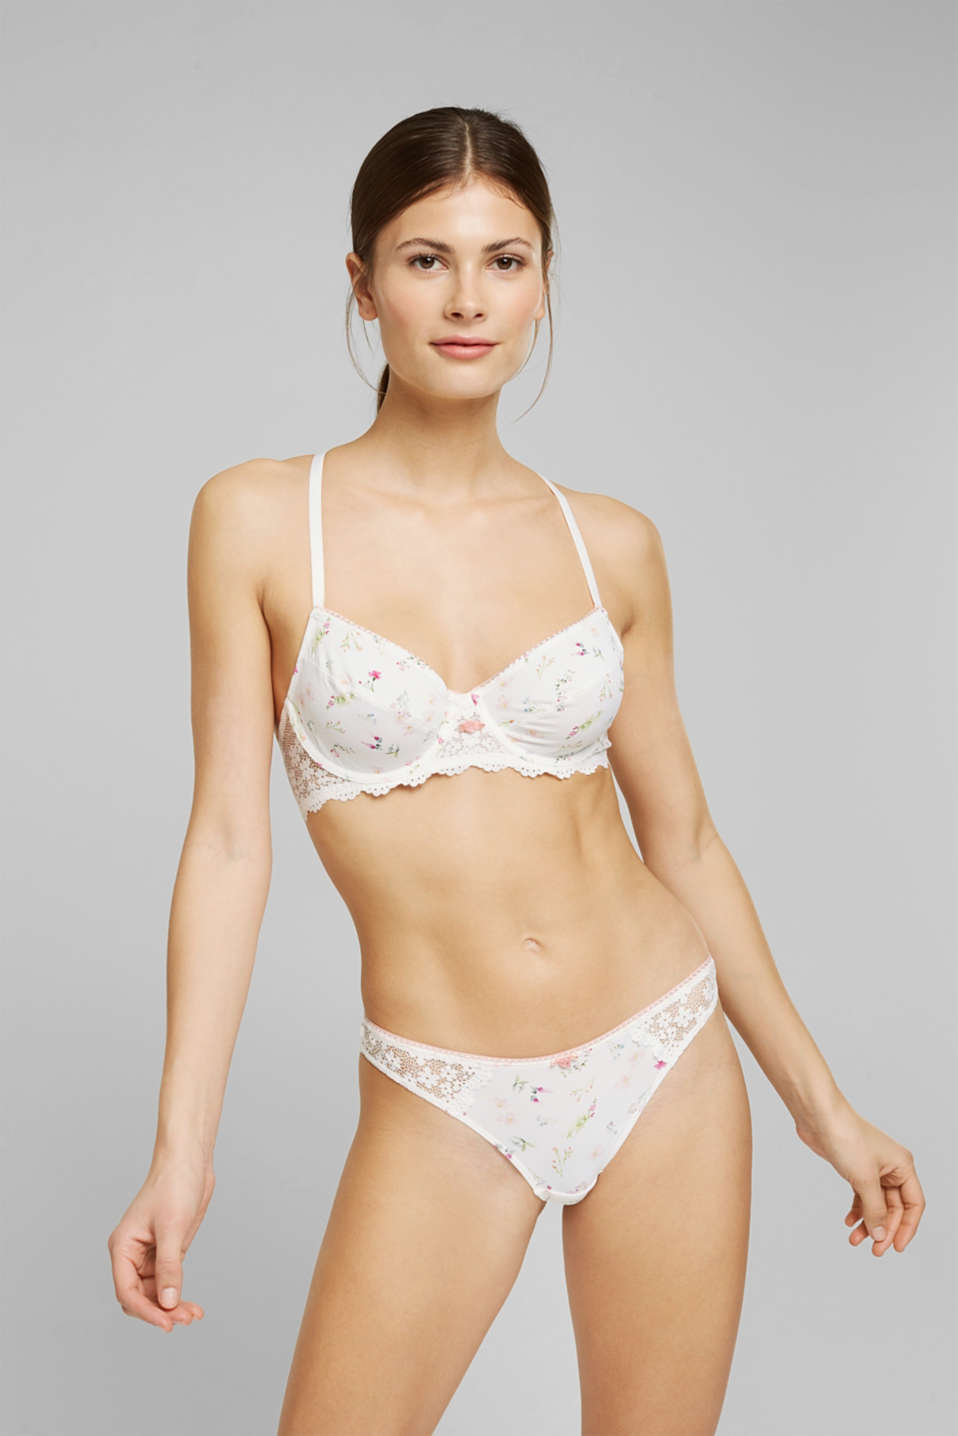 Esprit - Recycled: Unpadded underwire bra with lace